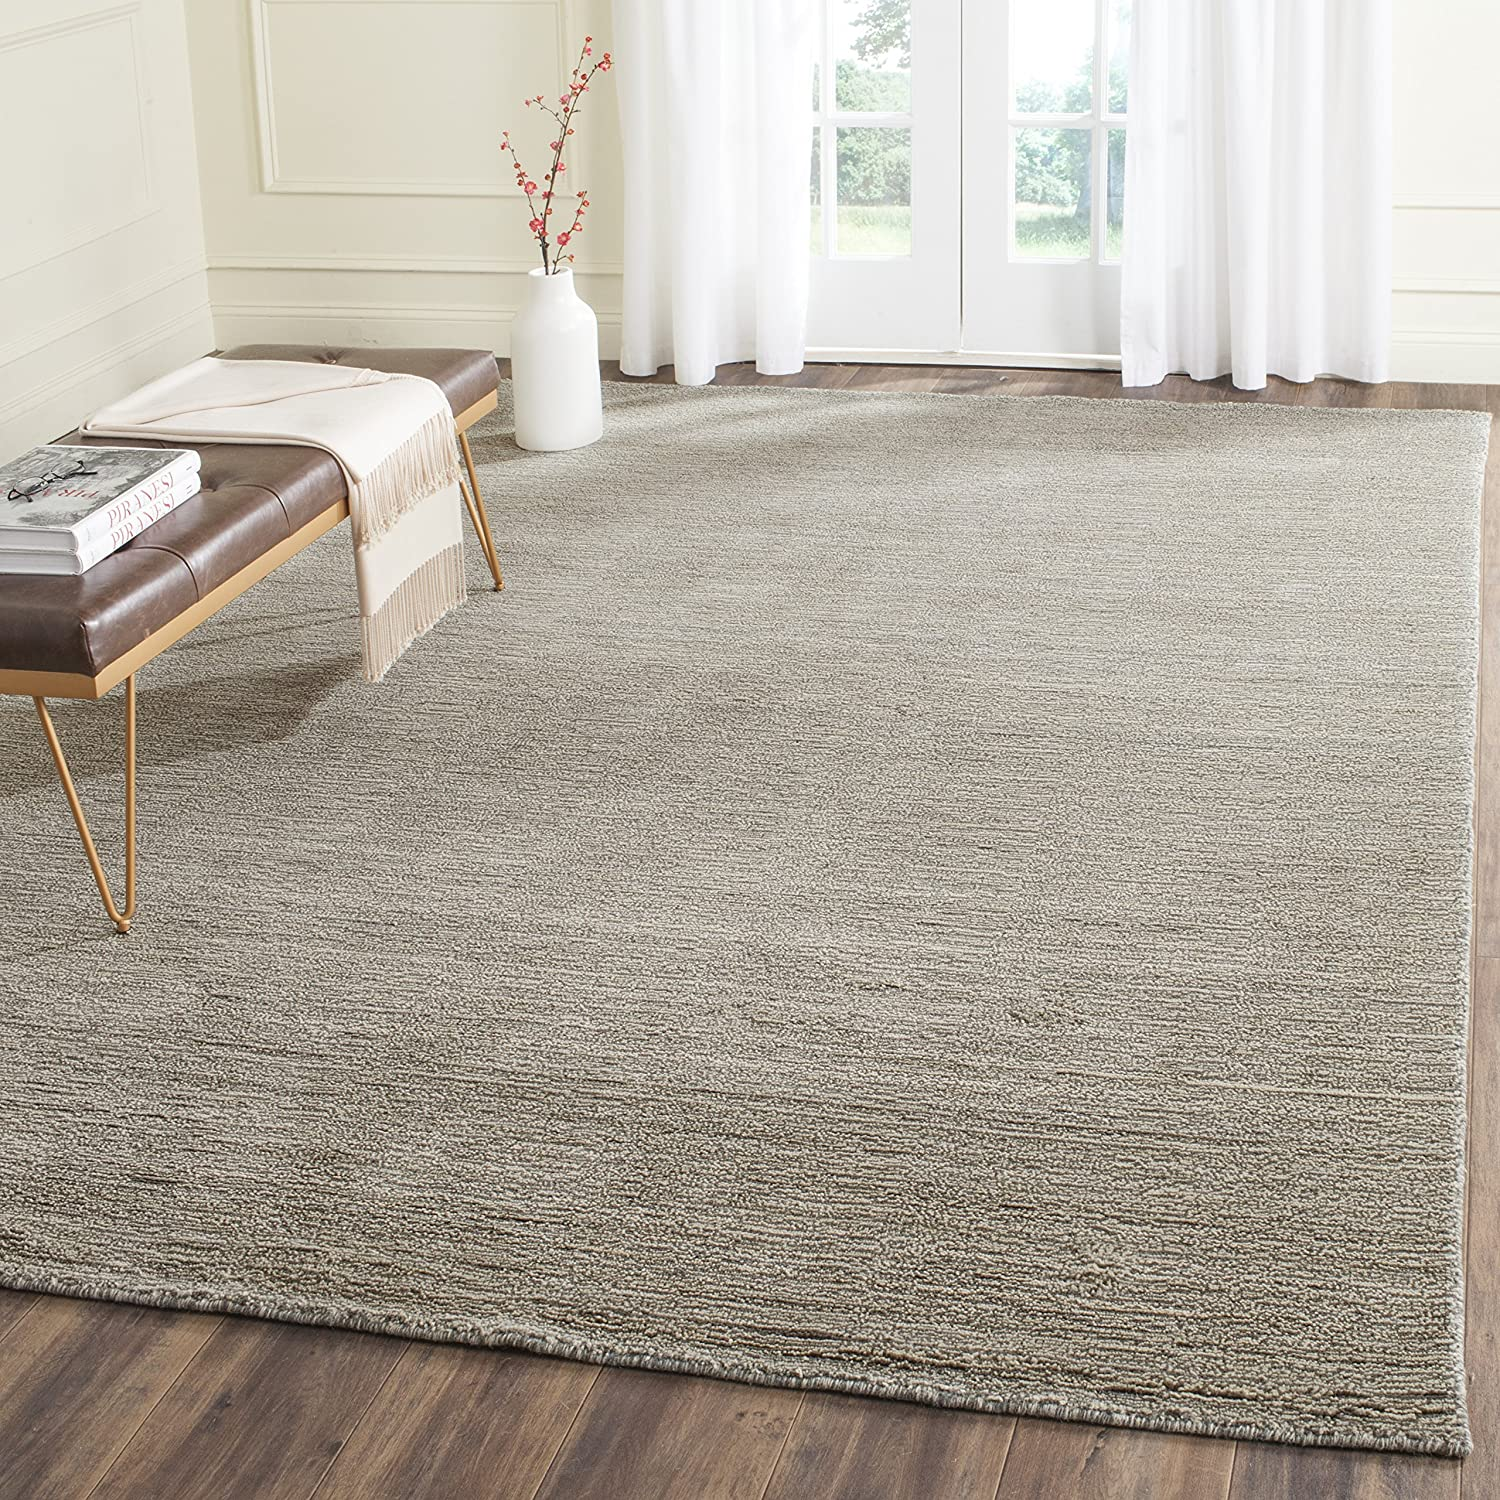 amazoncom safavieh himalaya collection him311d handmade grey premium wool area rug 6u0027 x 9u0027 kitchen u0026 dining - Safavieh Rug